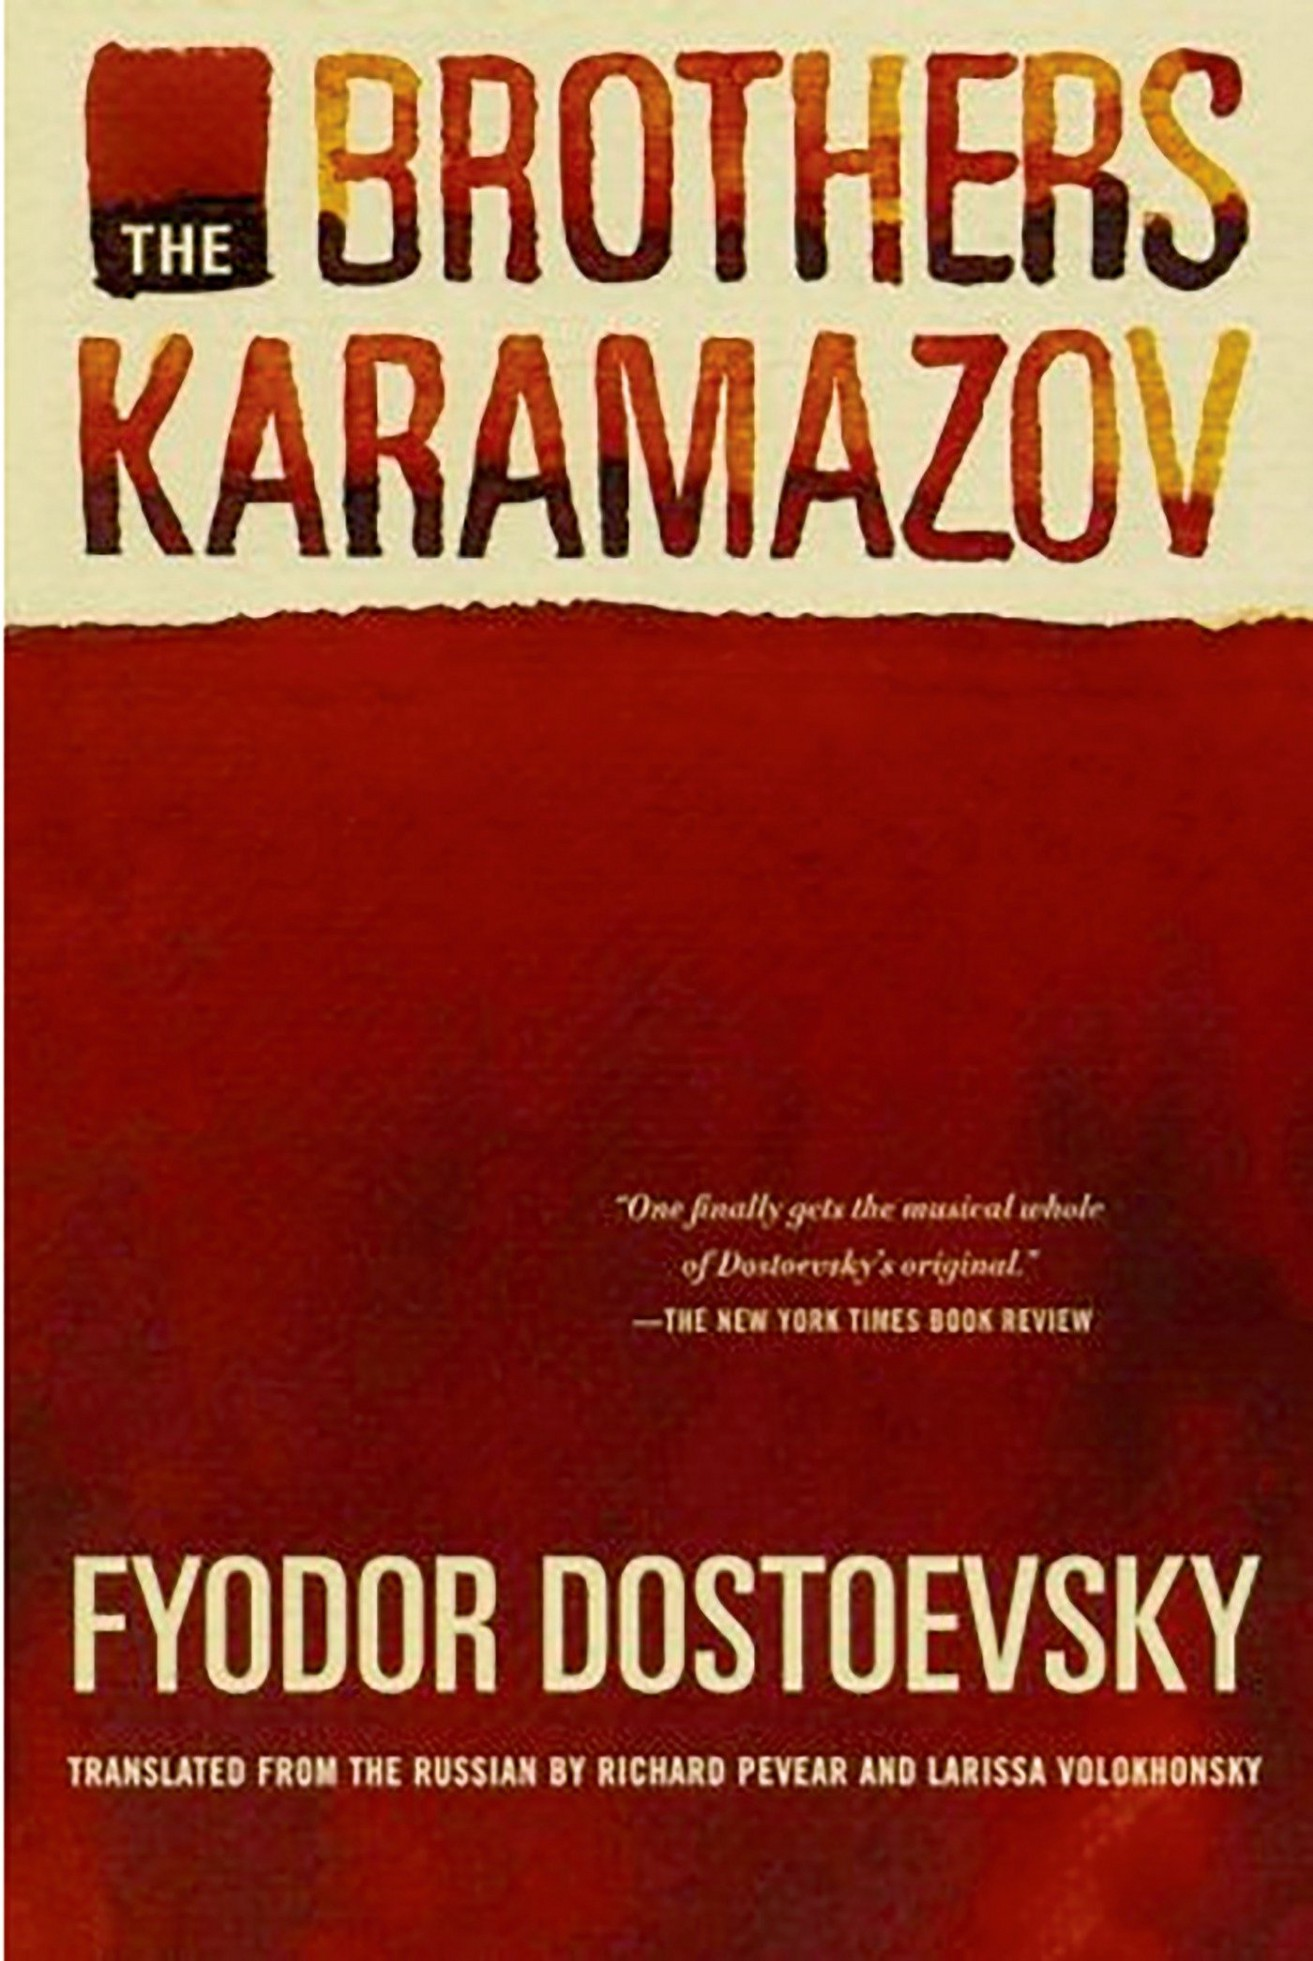 A Way to Read The Brothers Karamazov - Brandon Monk - Medium